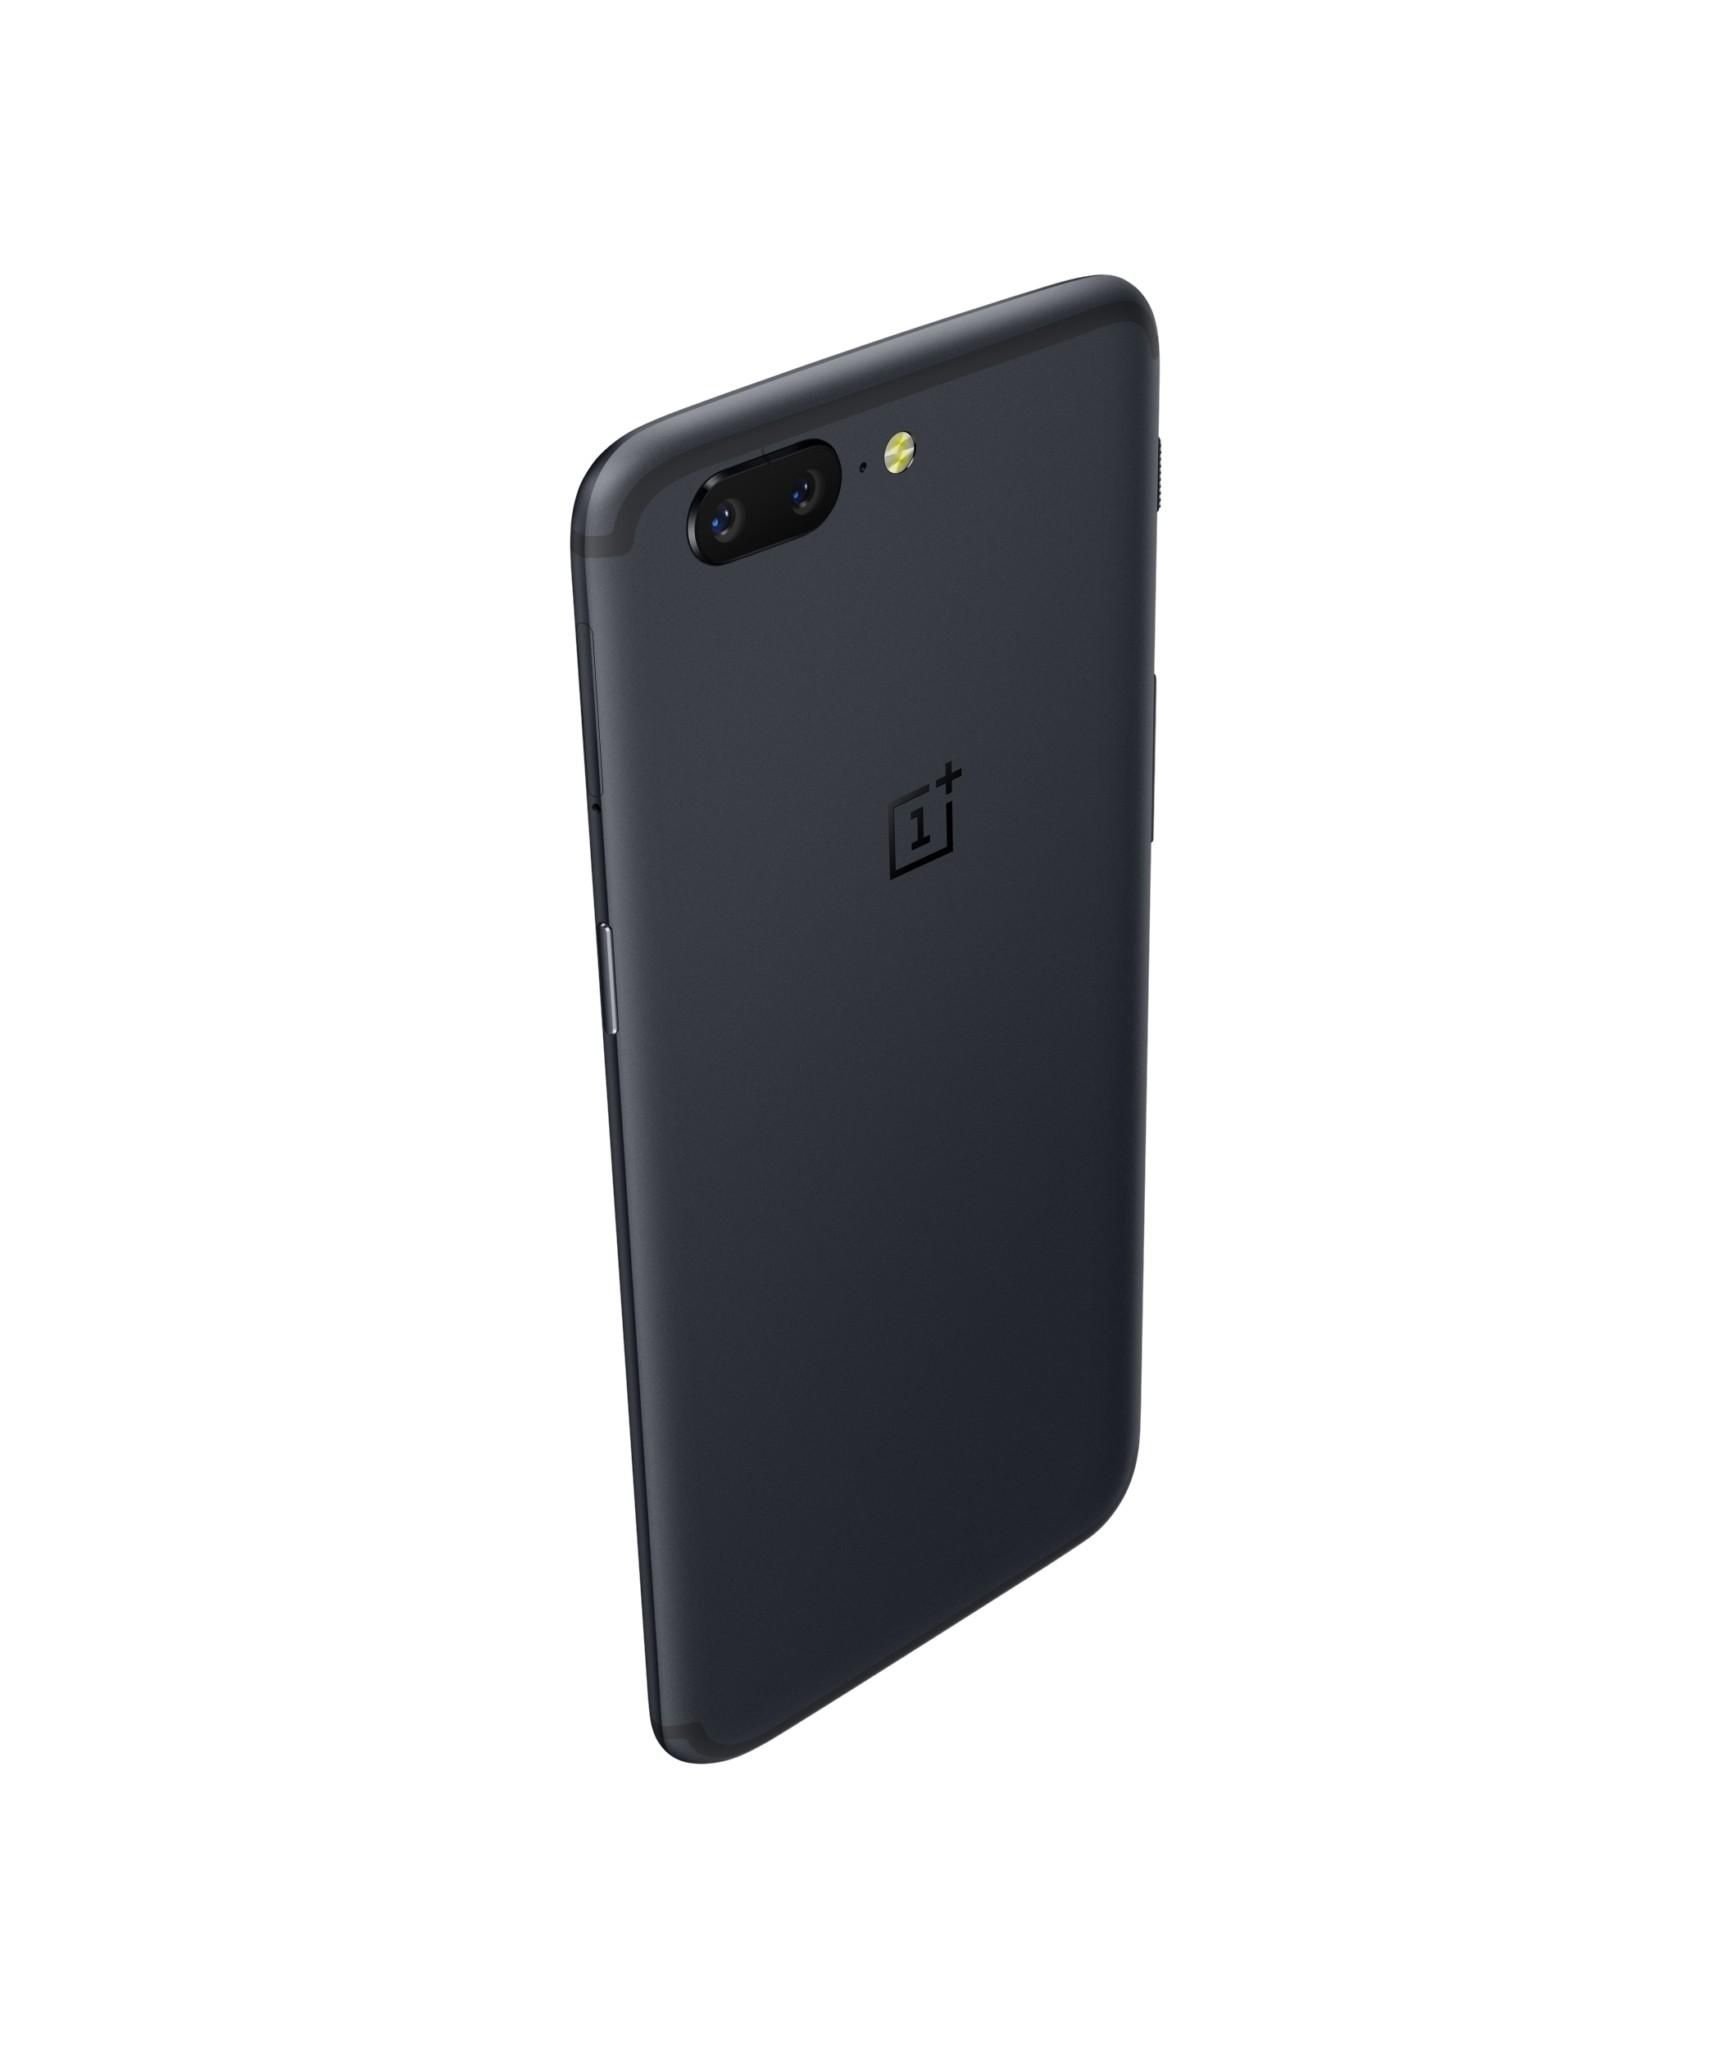 The OnePlus 5 vertical rear profile Never Settle